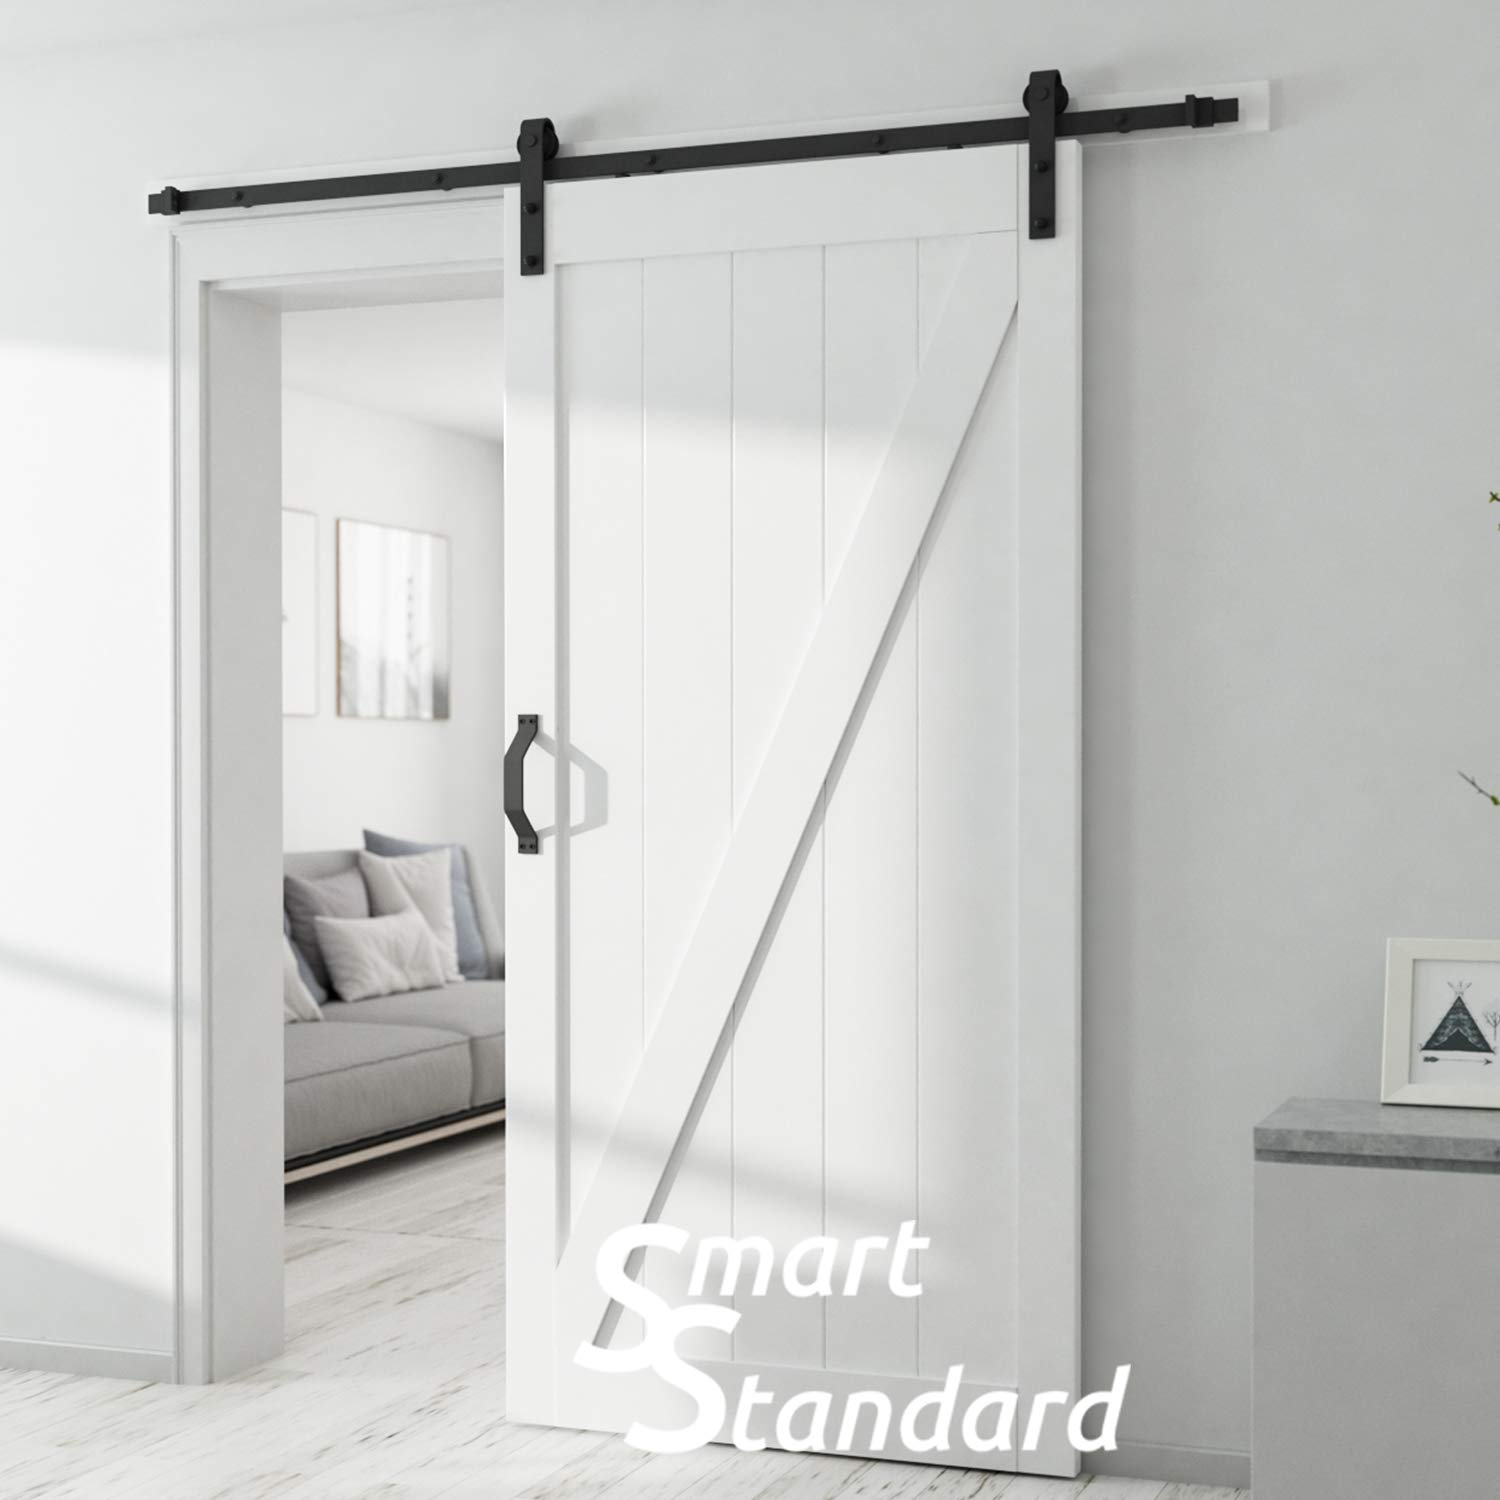 SMARTSTANDARD 36in x 84in Sliding Barn Door with 6.6ft BarnDoor Hardware Kit & Handle, Pre-Drilled Ready to Assemble Wood Slab Covered with Water-Proof PVC Surface (White Z-Frame Panel), by SMARTSTANDARD (Image #4)